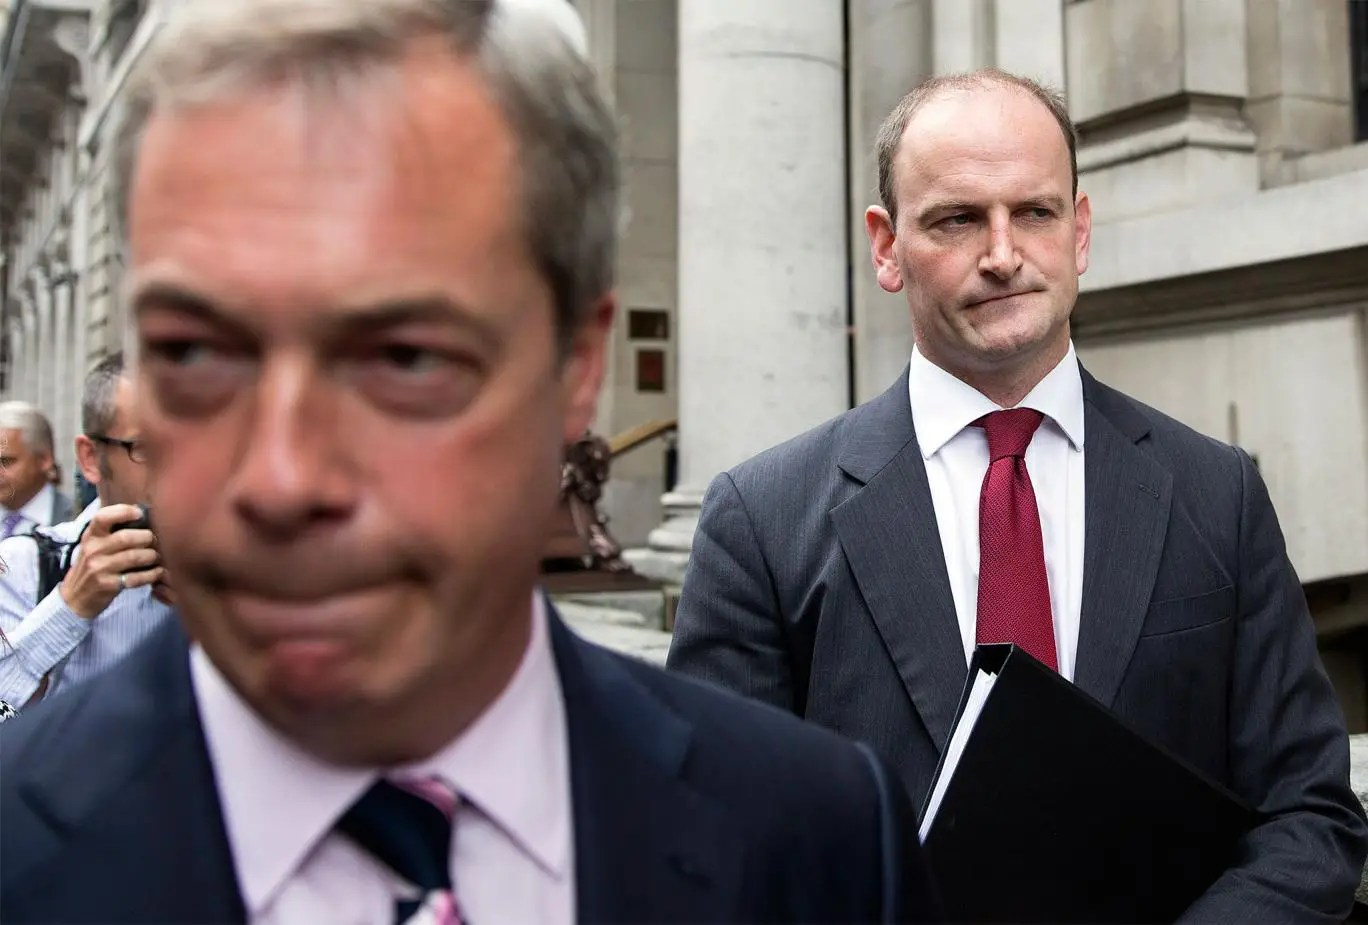 Douglas Carswell claimed Farage's comments on immigrants with HIV were 'ill-advised'